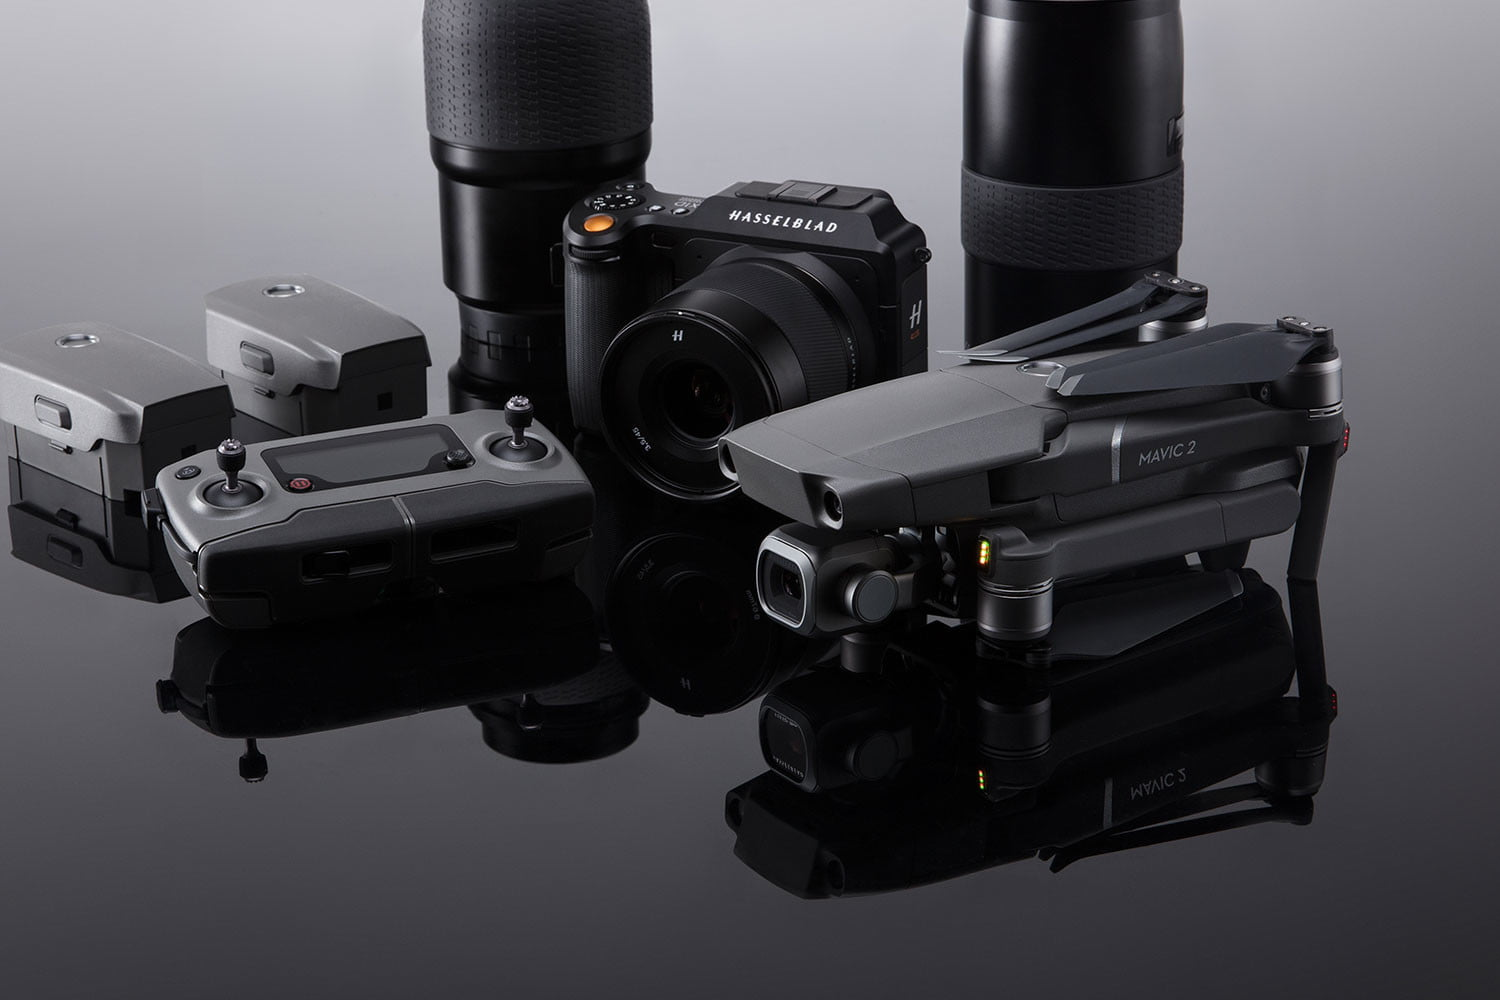 DJI's new Mavic drones are here, and they're even better than we